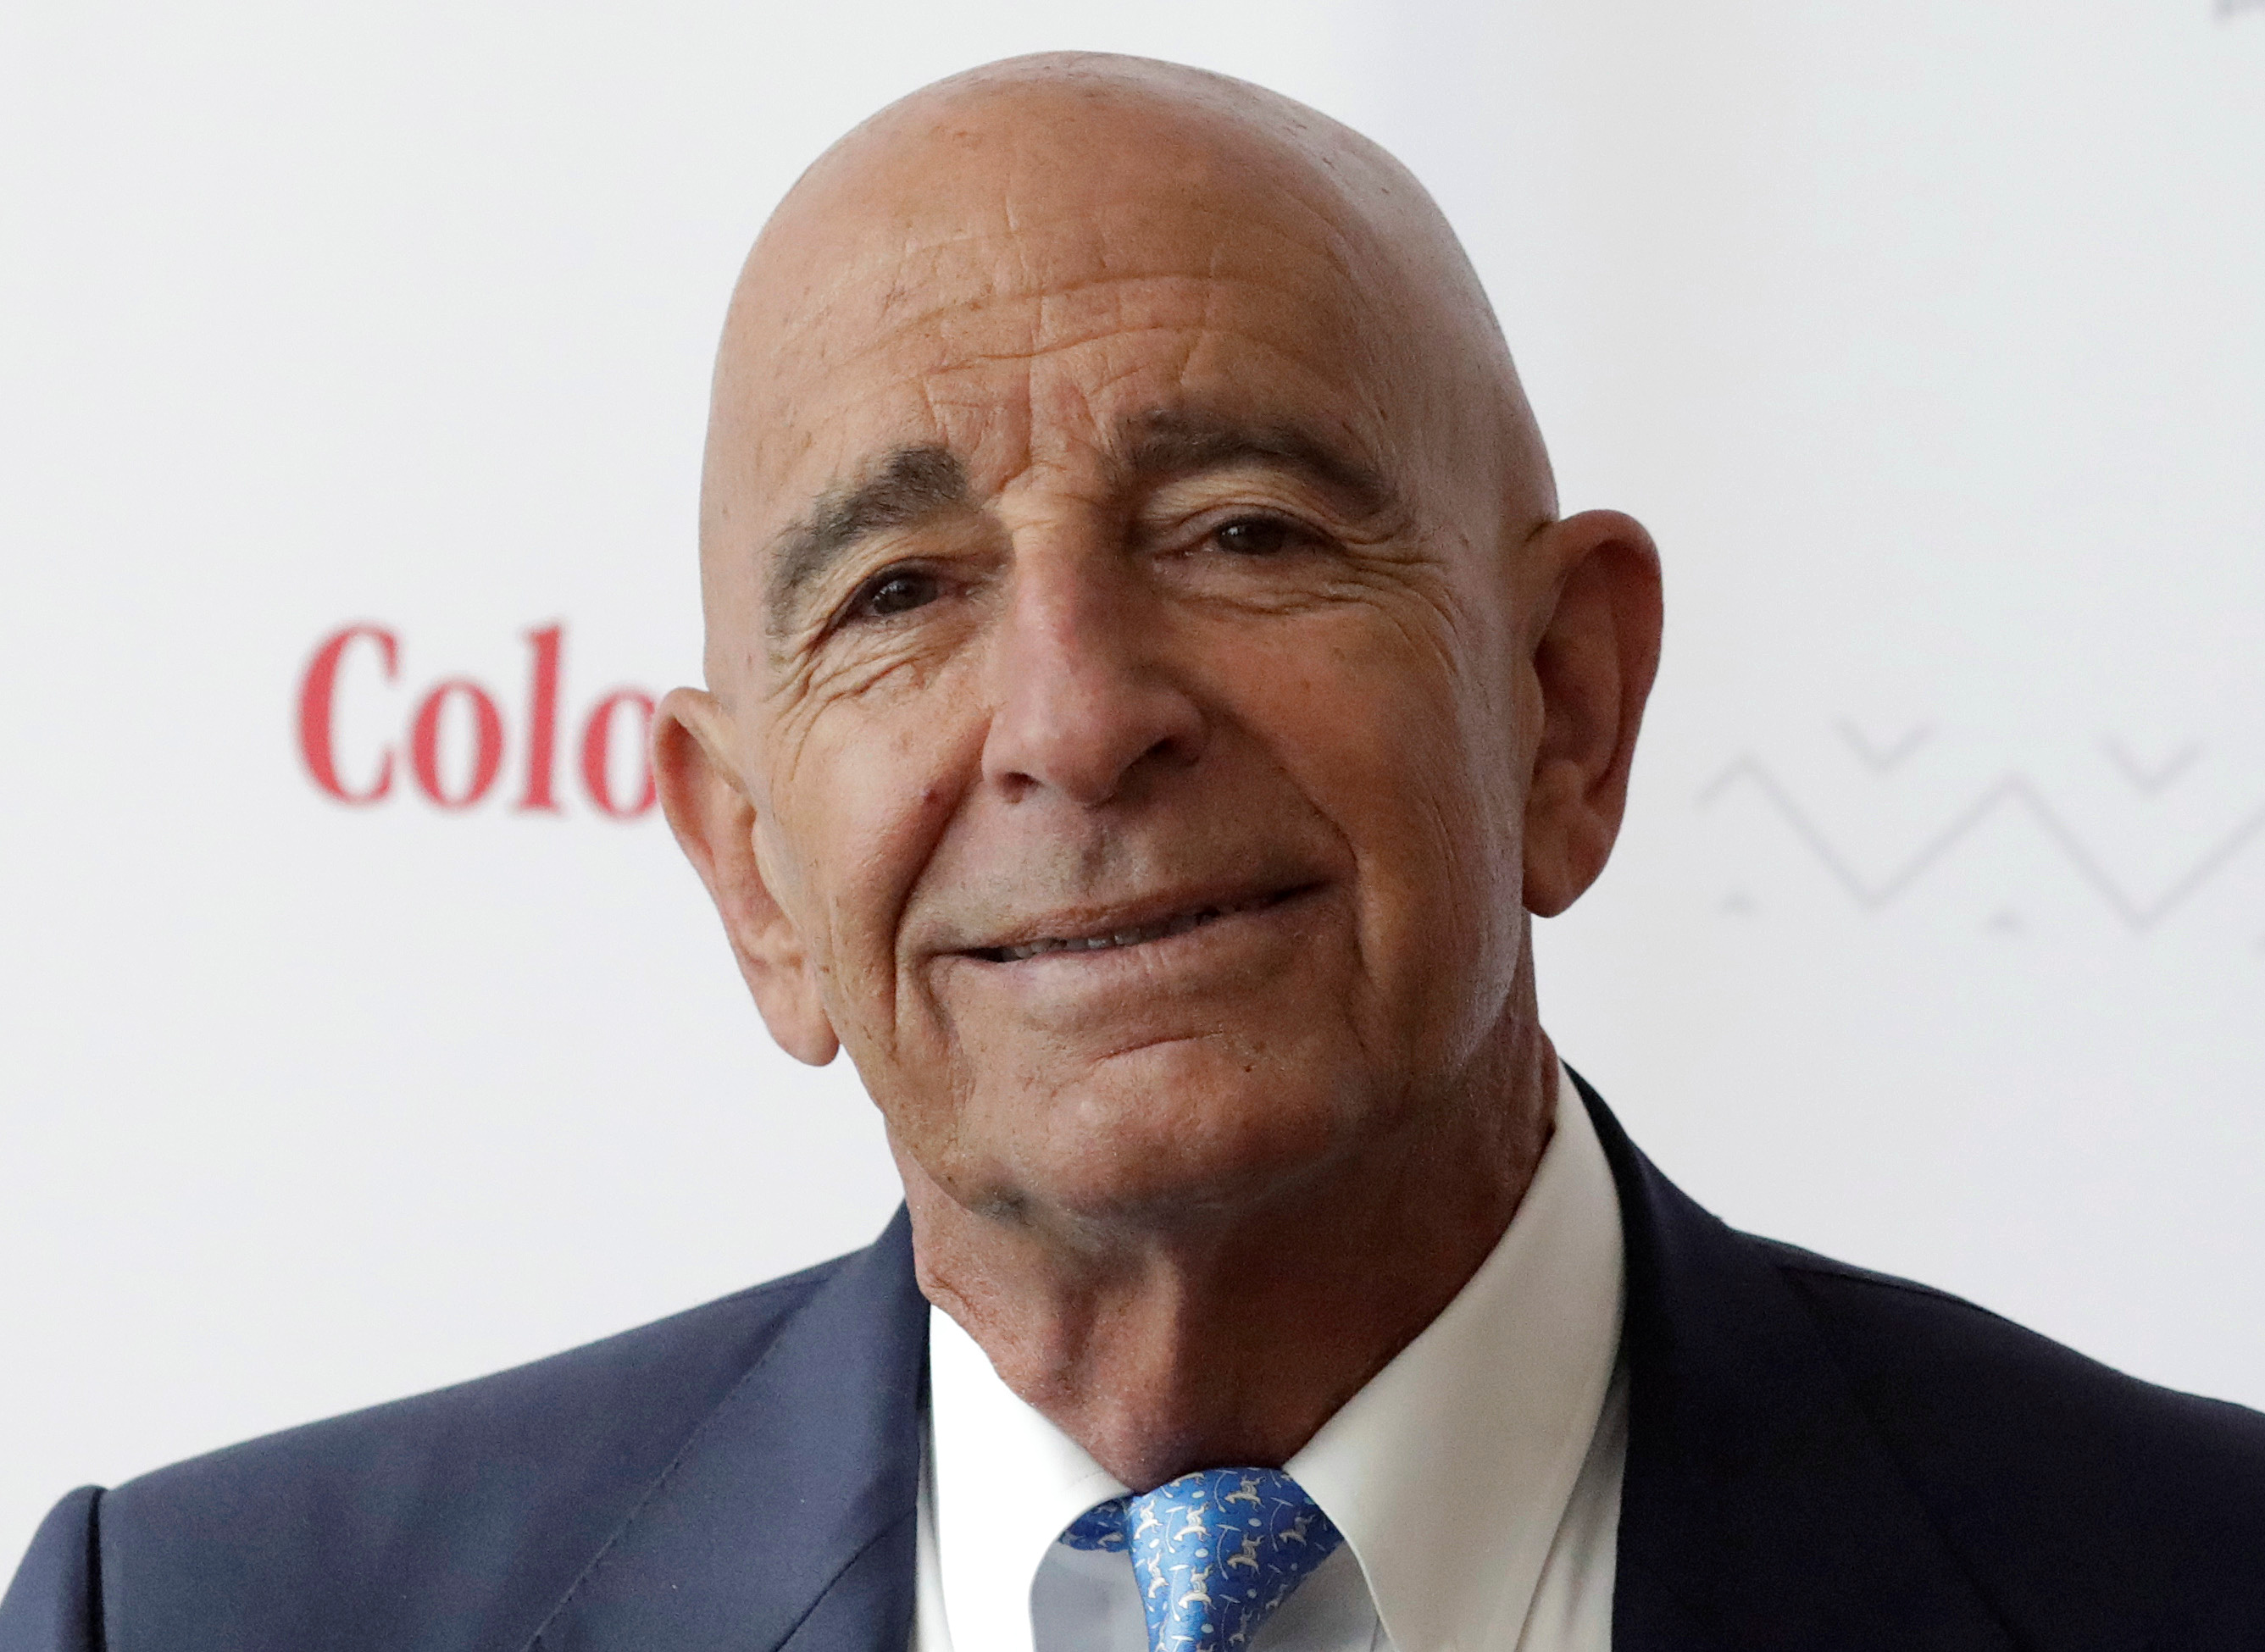 Billionaire real estate investor Thomas Barrack, Chief Executive Officer of Colony Capital, holds a meeting with the media to discuss investment plans in Mexico and Latin America, in Mexico City, Mexico May 22, 2019. REUTERS/Henry Romero